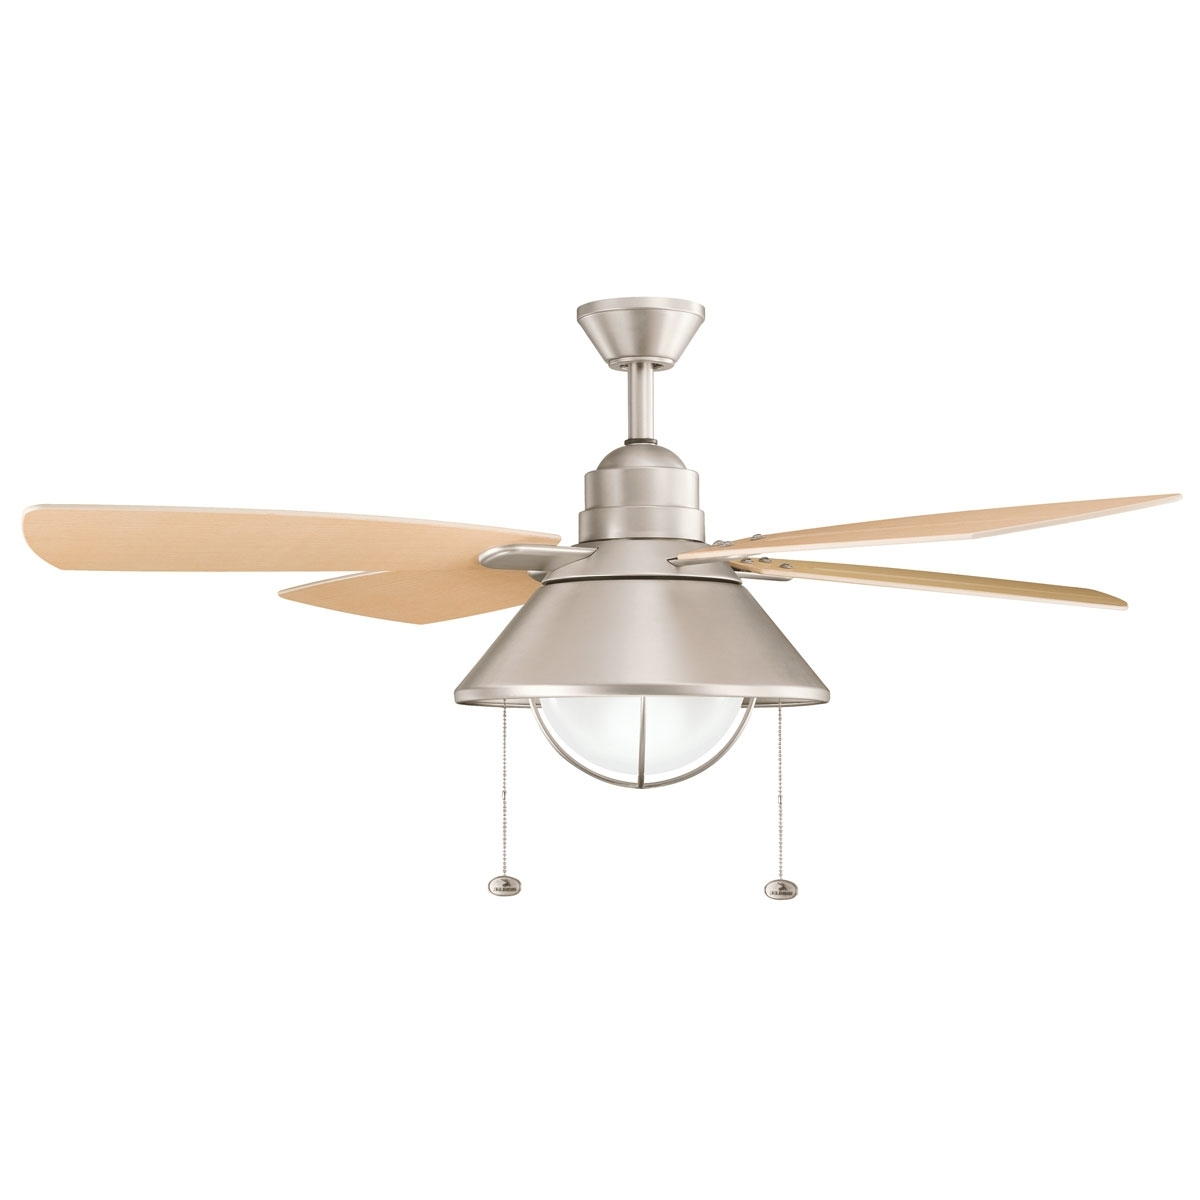 Fashionable Outdoor Ceiling Fans Wet Rated With Light – Outdoor Lighting Ideas Throughout Damp Rated Outdoor Ceiling Fans (View 11 of 20)